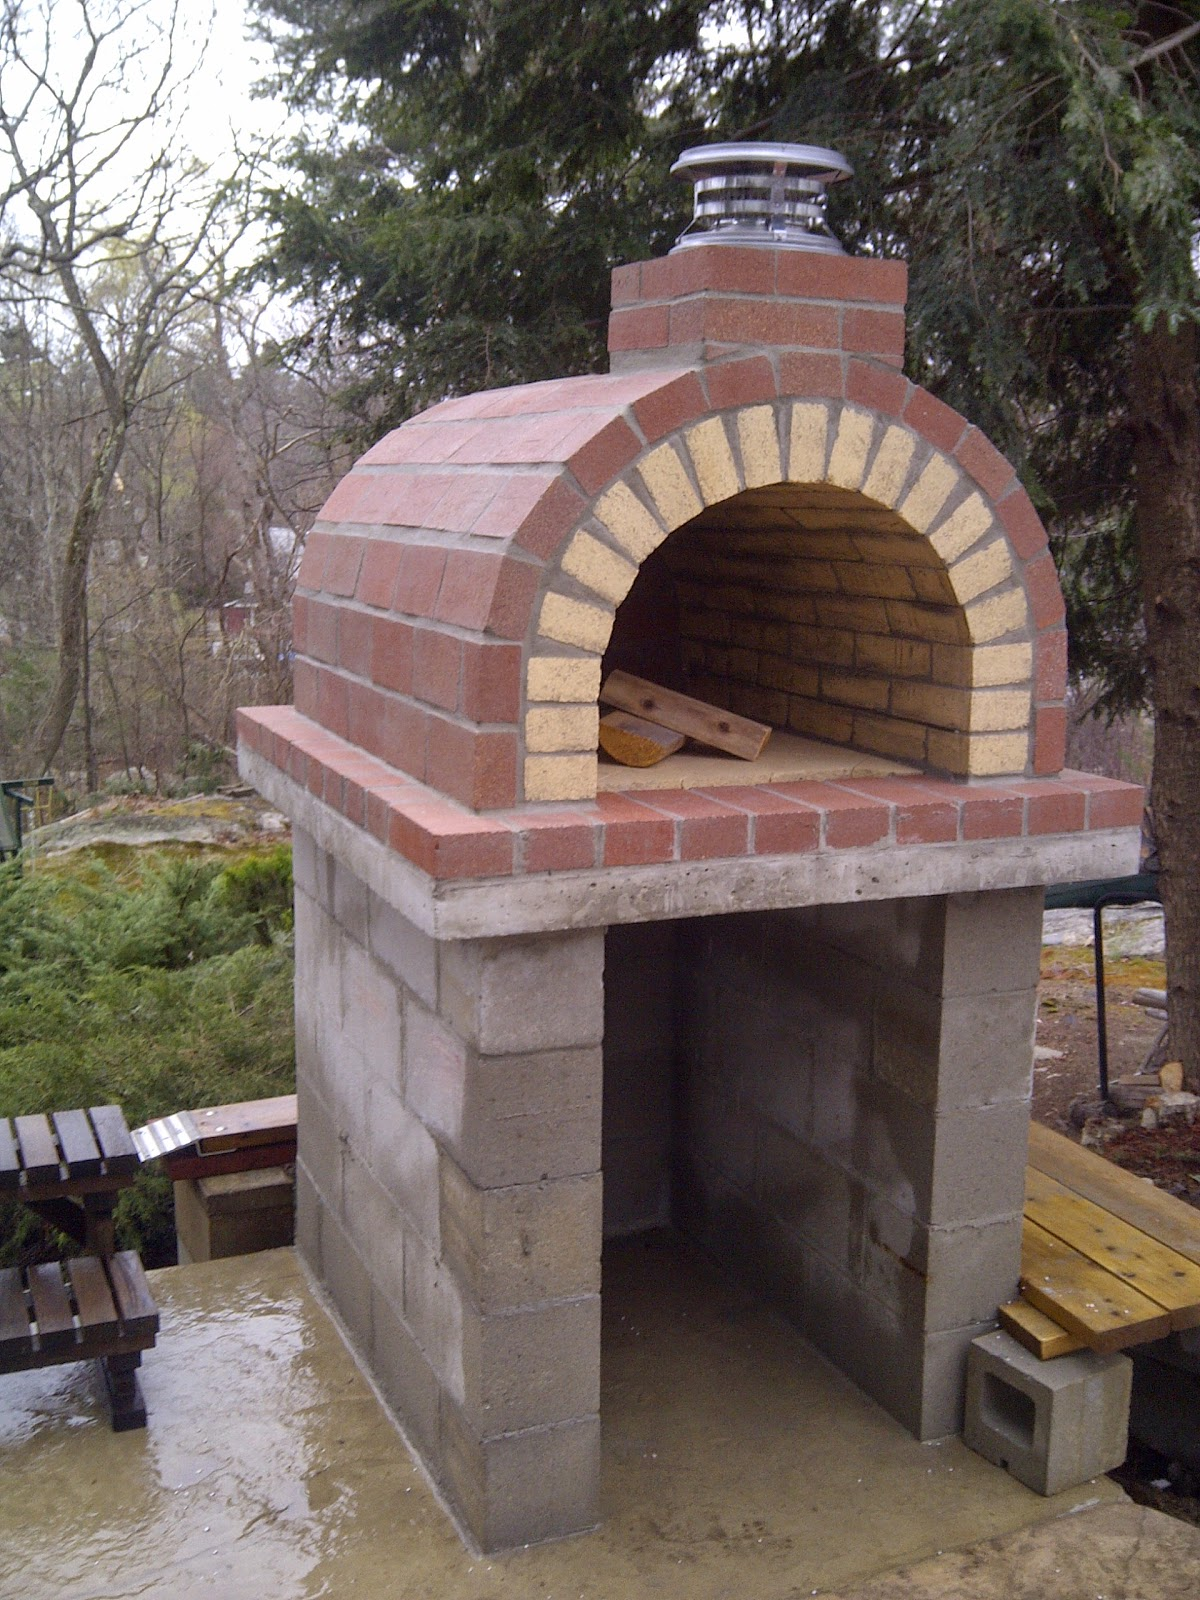 Outdoor Pizza Oven Building Instructions Architectural Design